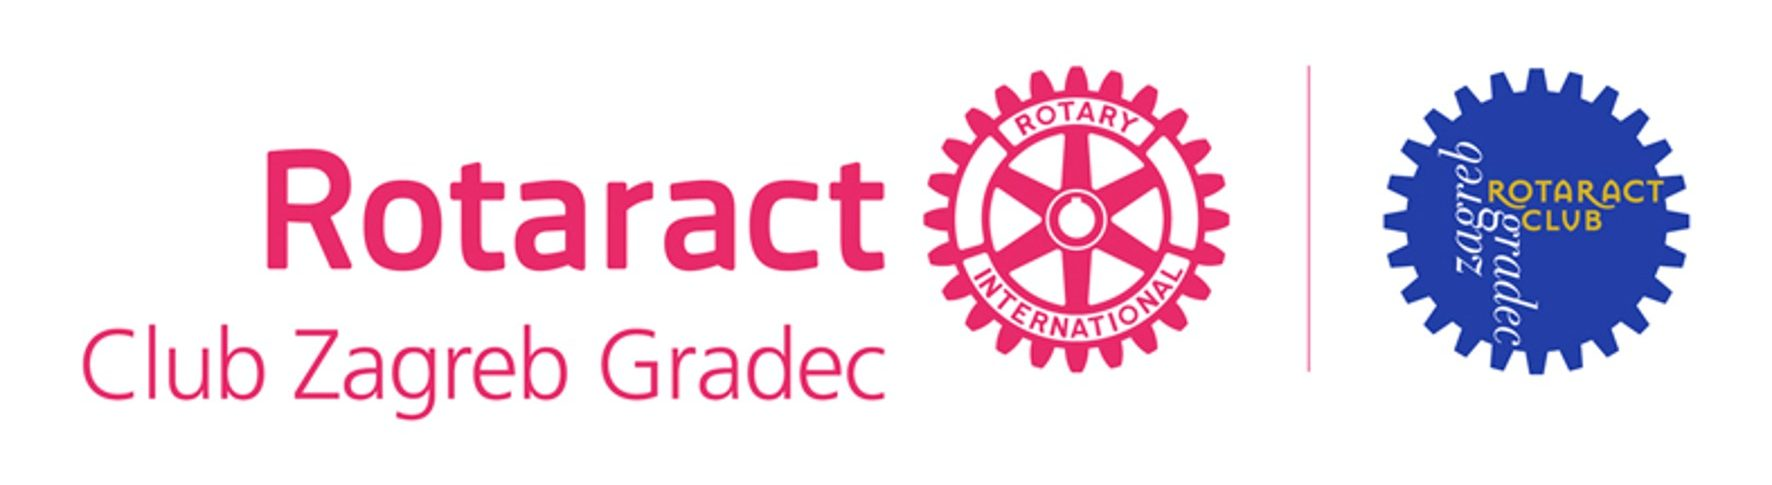 Rotaract Club Zagreb Gradec